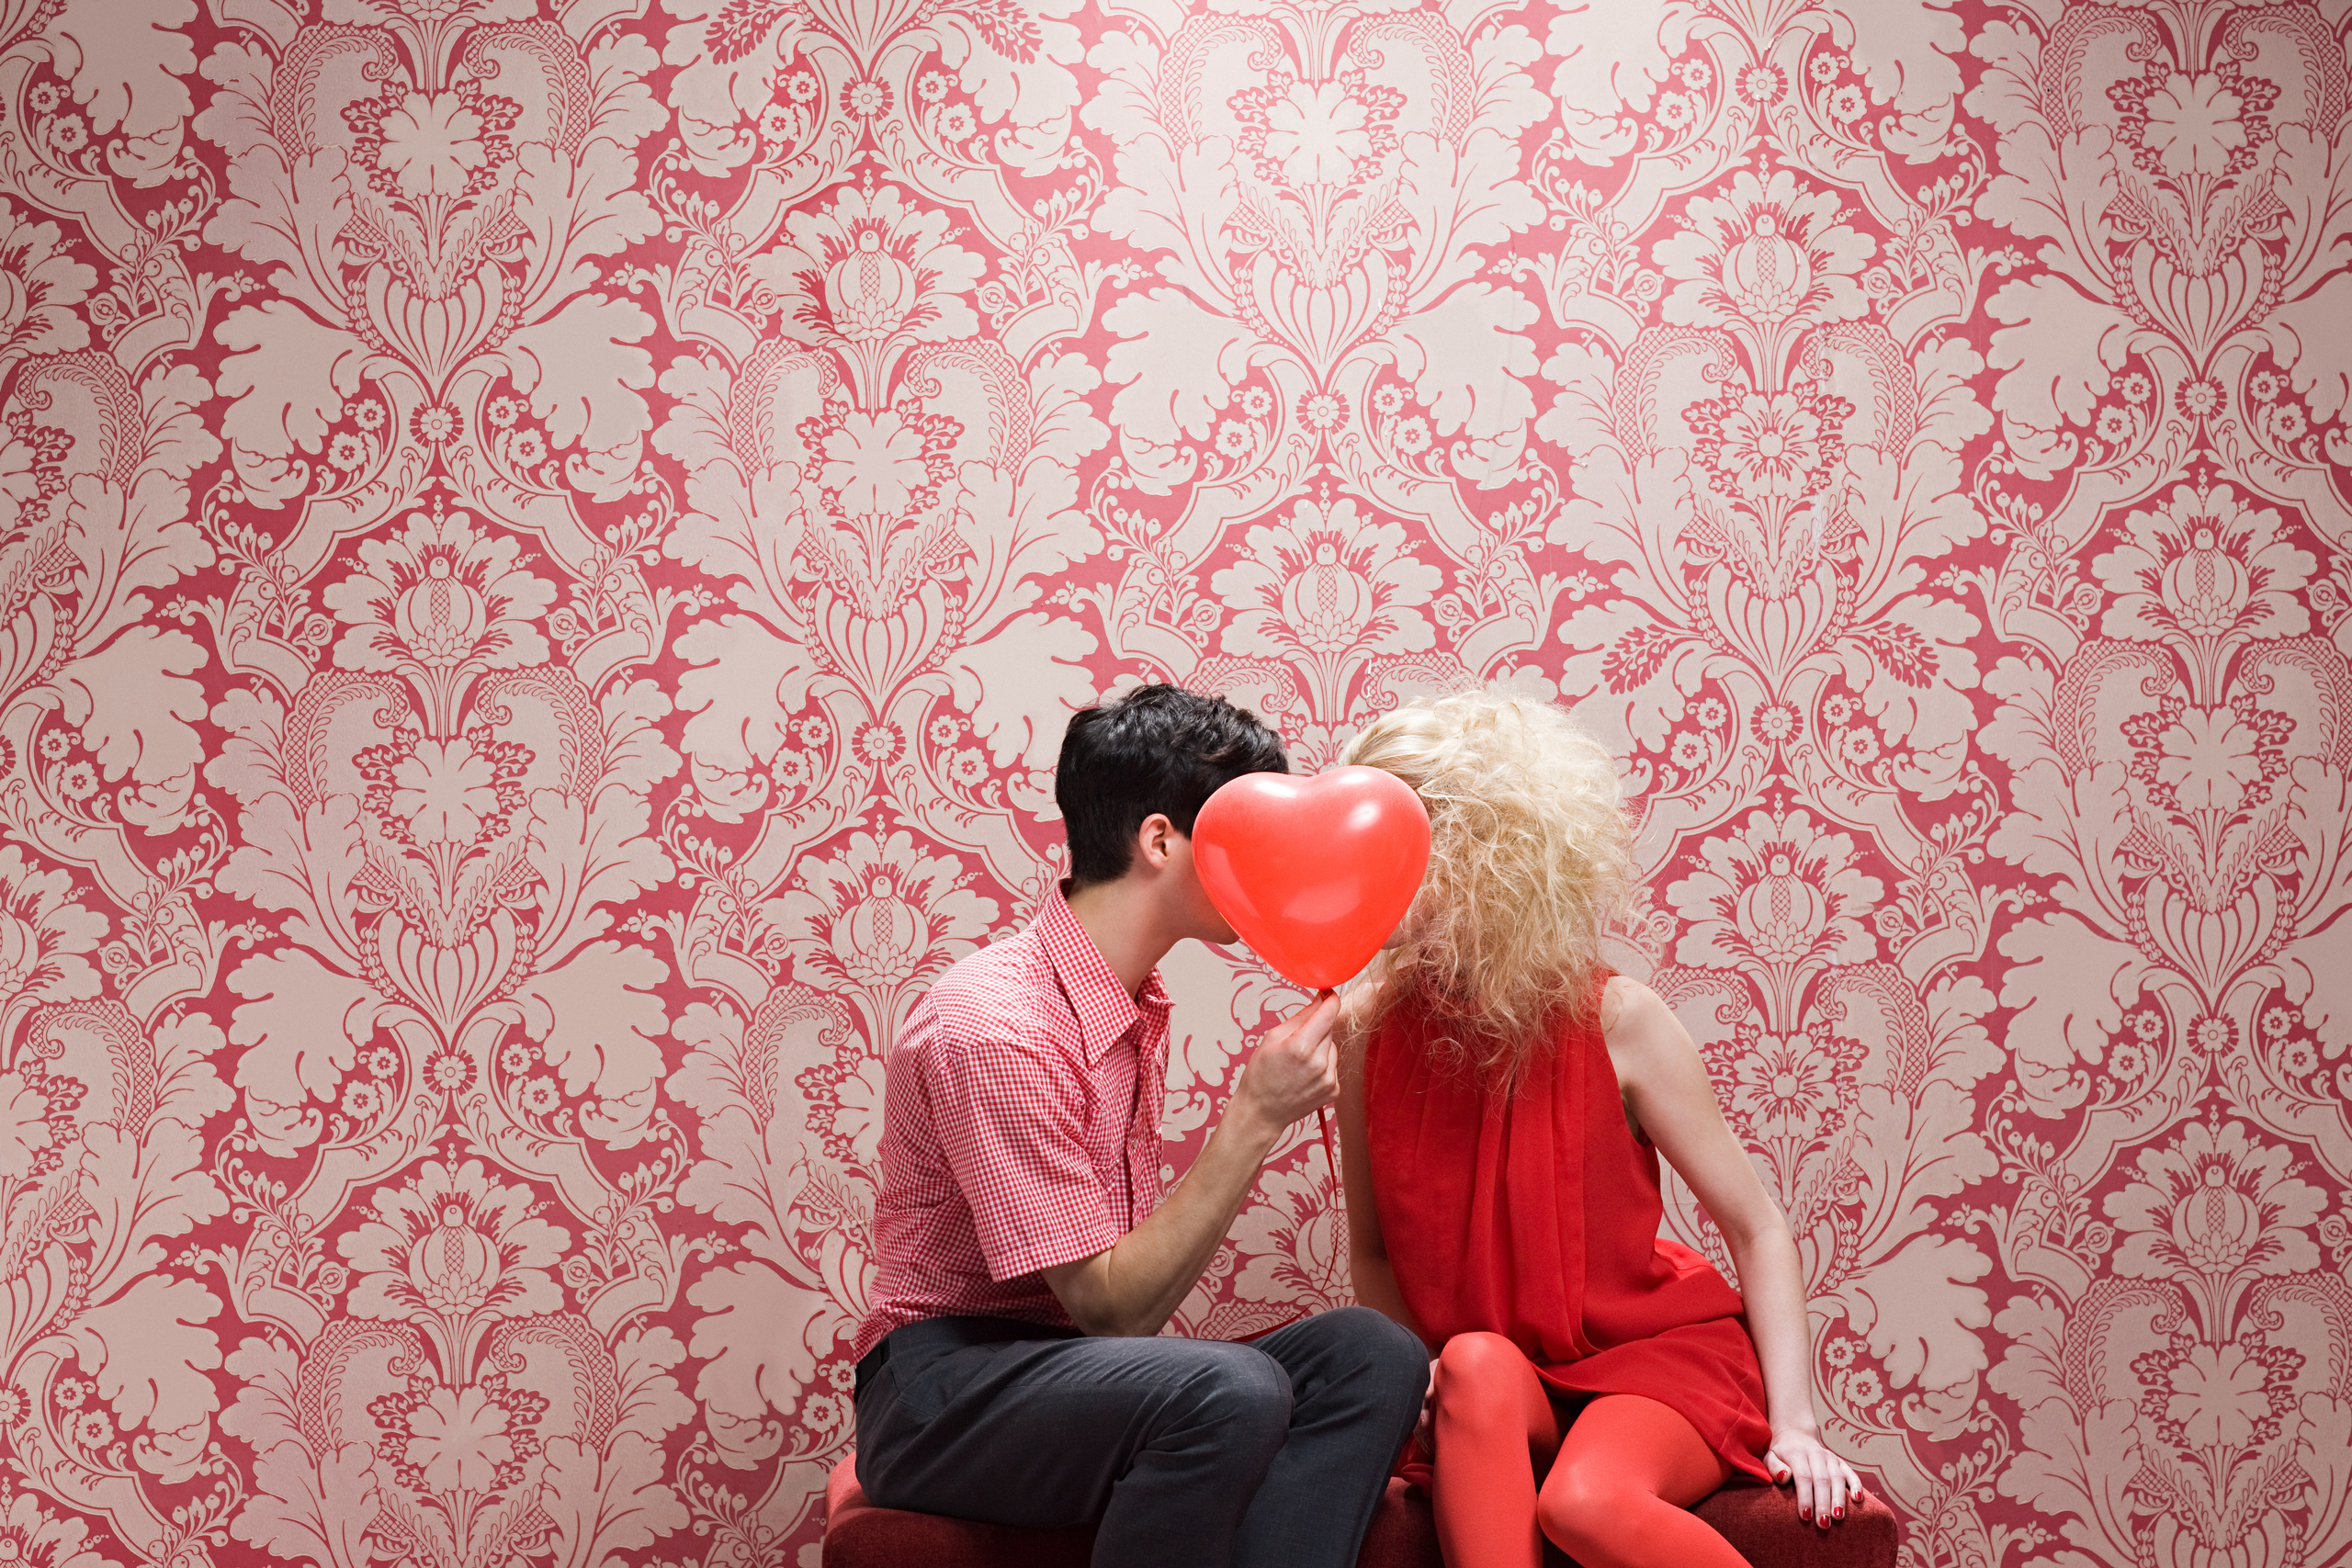 Couple behind heart shaped balloon